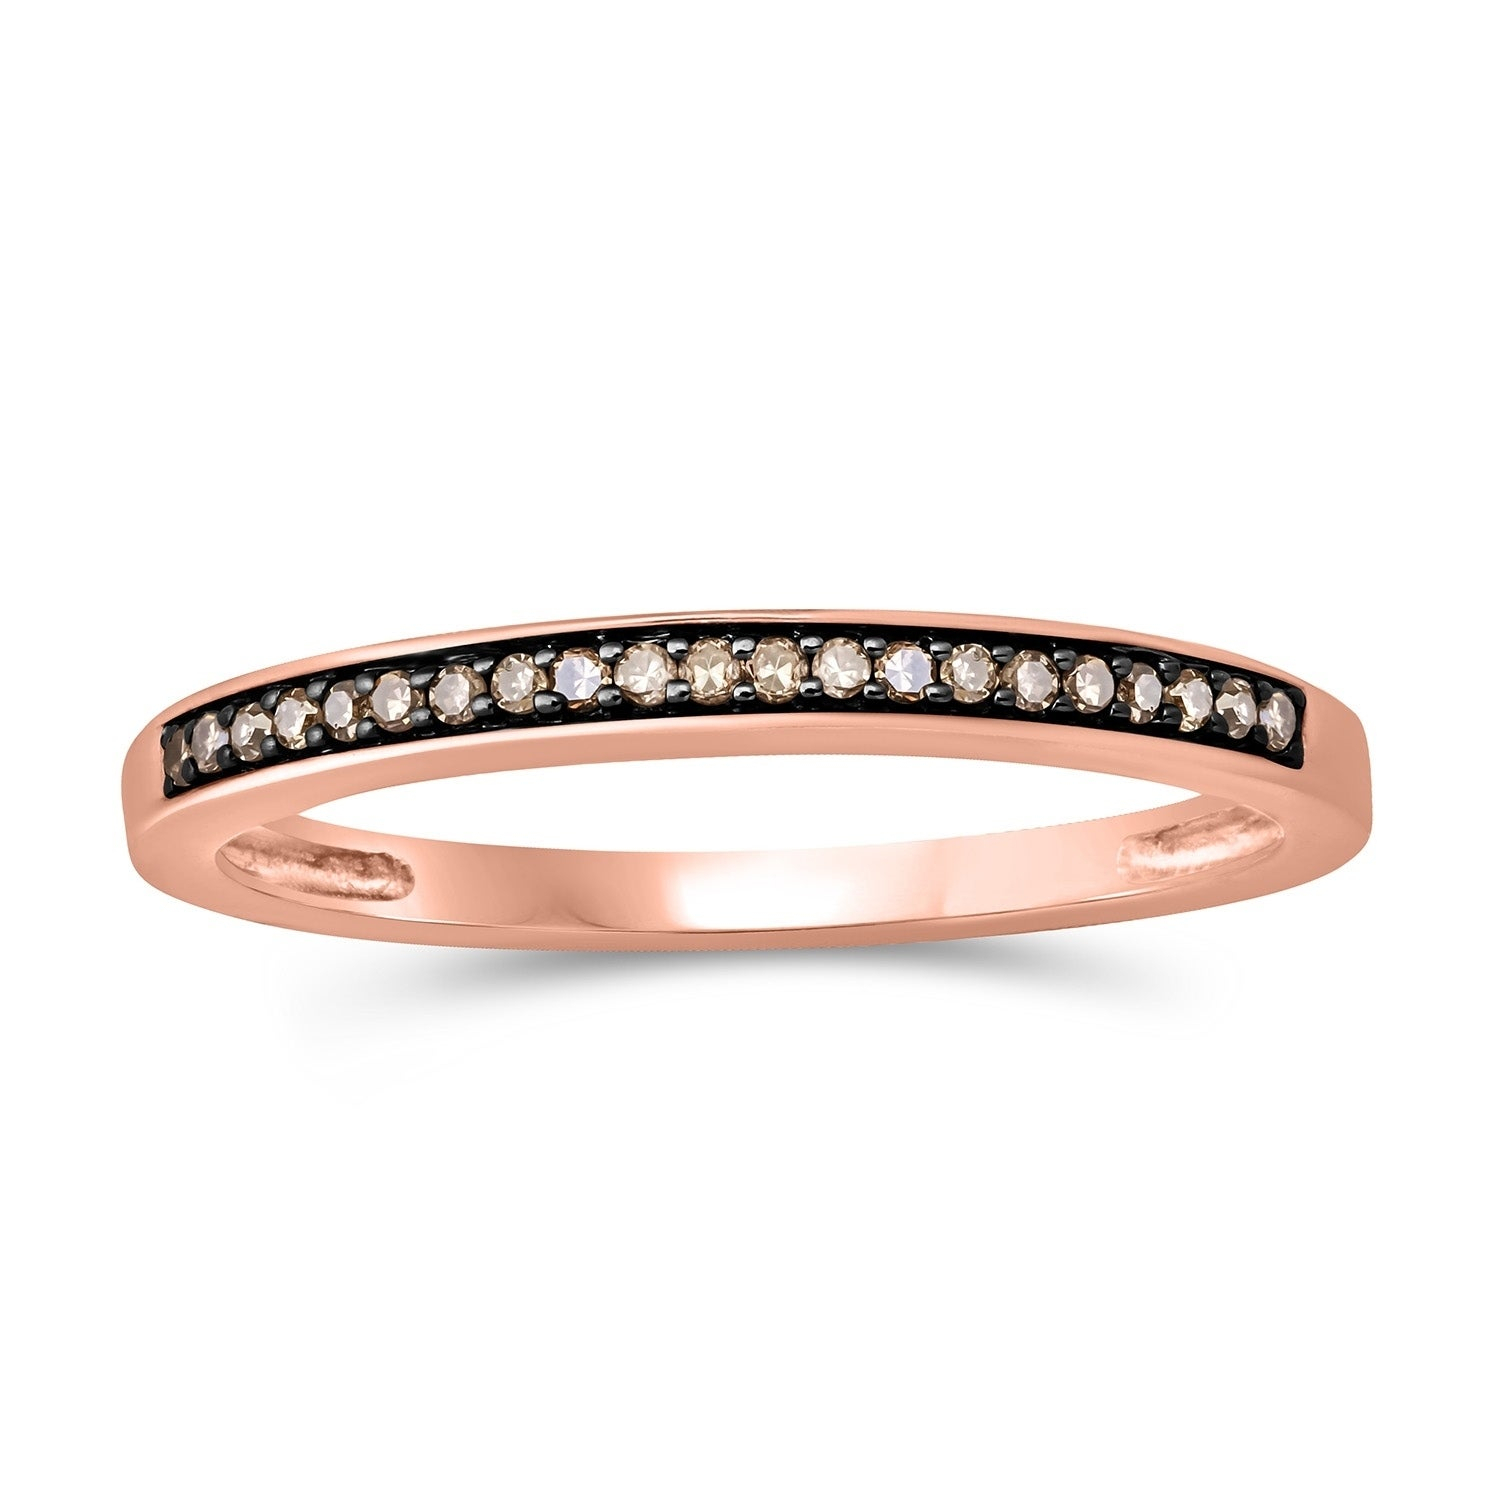 Cali Trove 10kt Rose Gold 1/10ct Tdw Champagne Diamond Anniversary Band Throughout Current Champagne Diamond Anniversary Bands In Rose Gold (View 18 of 25)